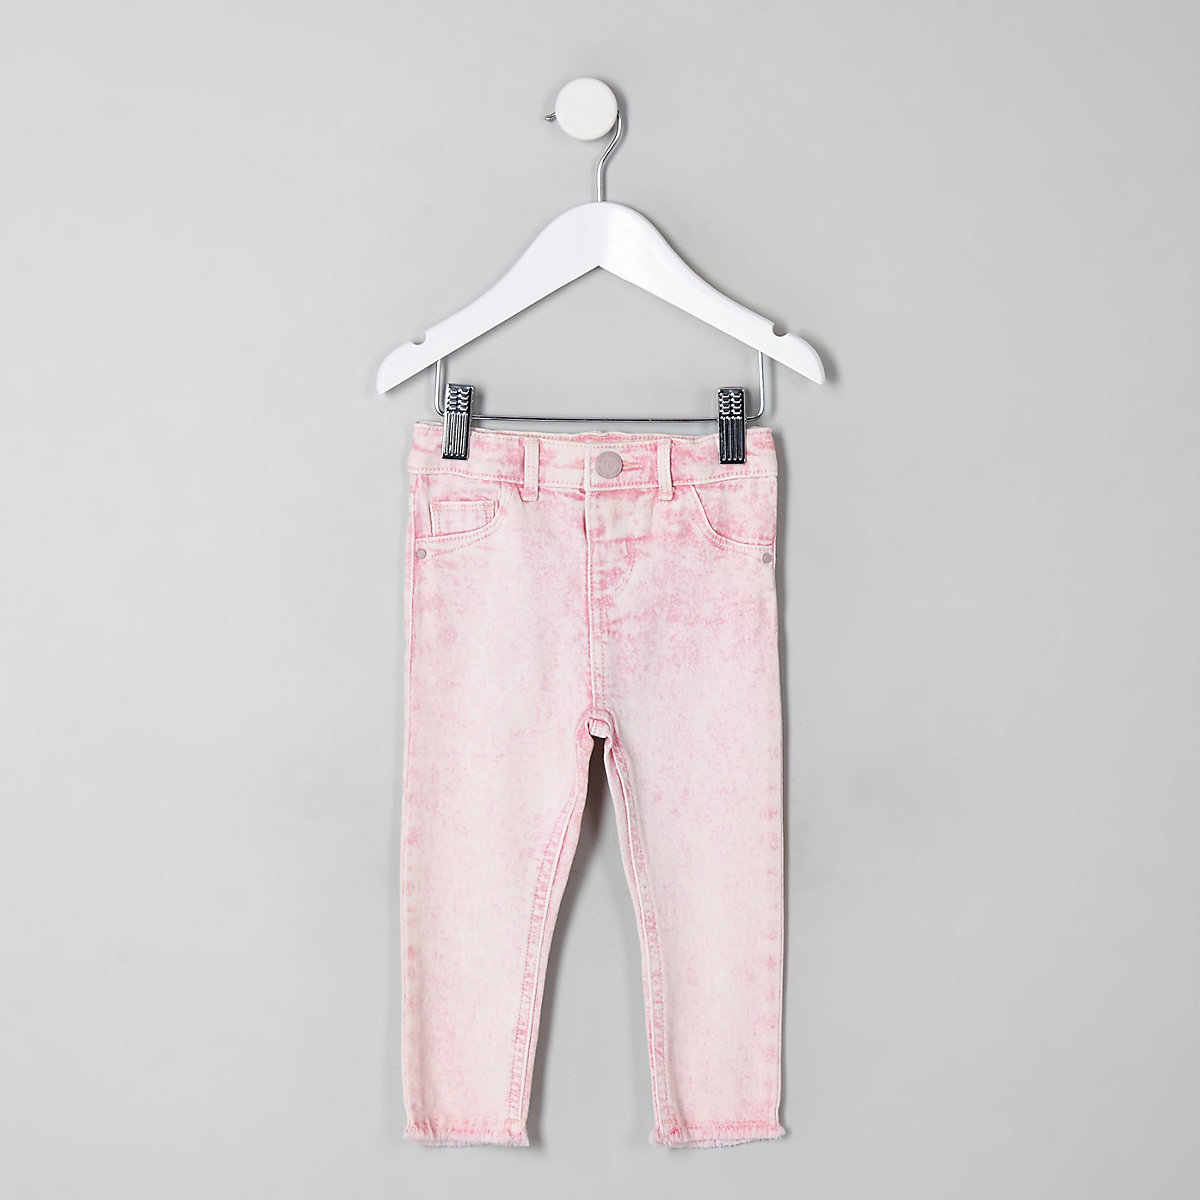 047e5bbe57c56 Mini girls pink acid wash Molly jeggings - Baby Girls Jeans - Baby Girls  Bottoms - Mini Girls - girls